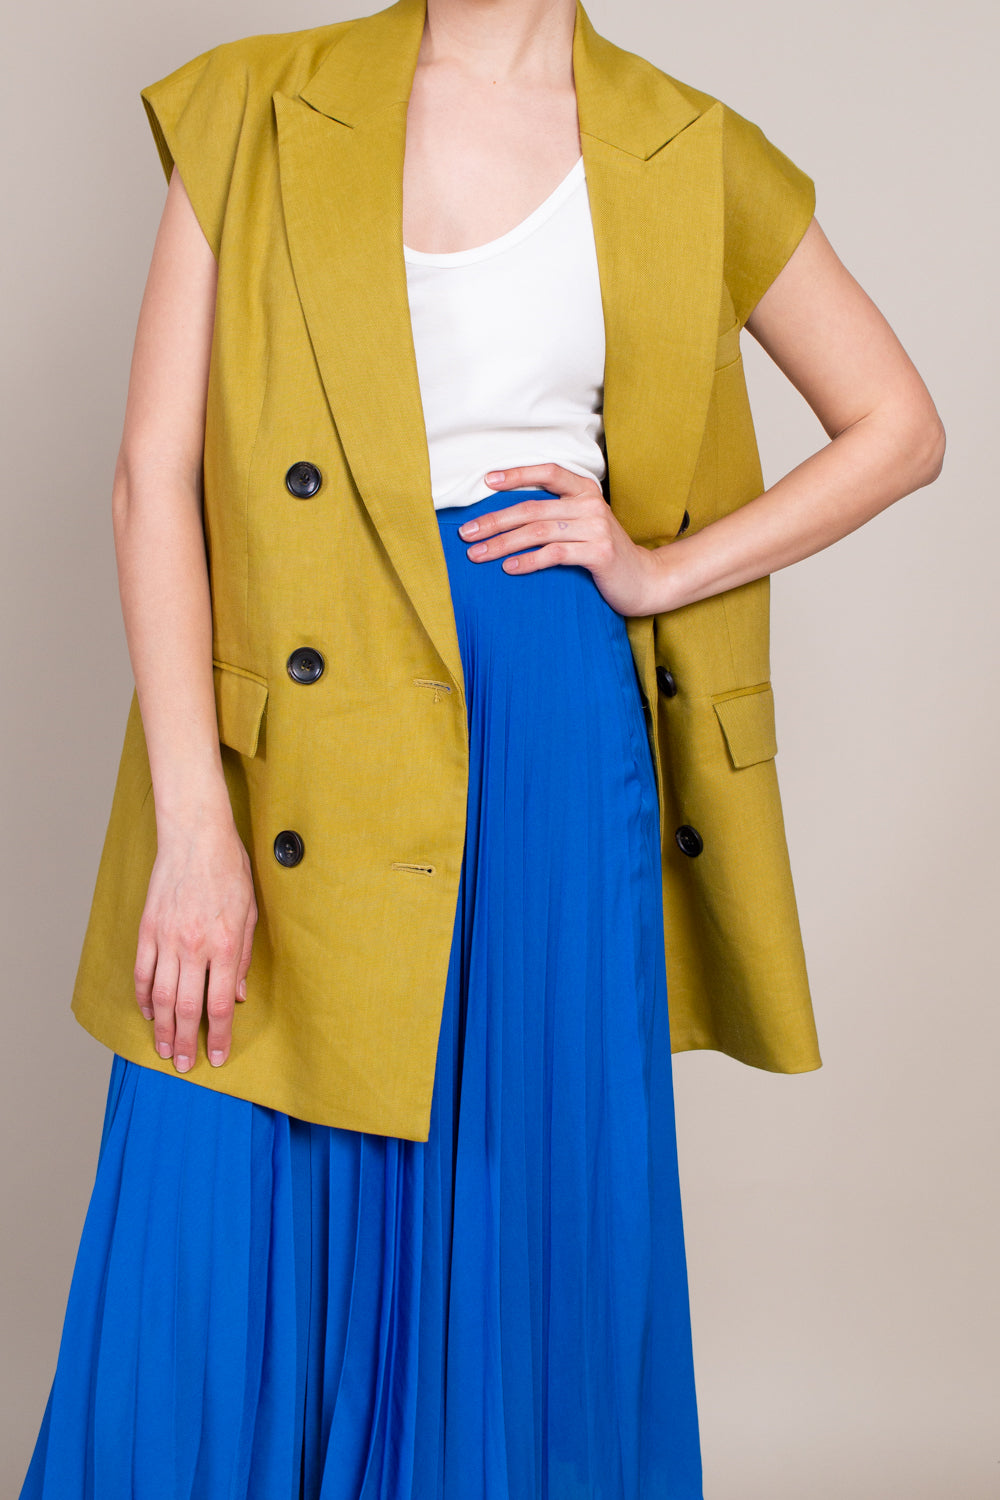 Tibi Wesson Vest in Tan Ochre - Vert & Vogue